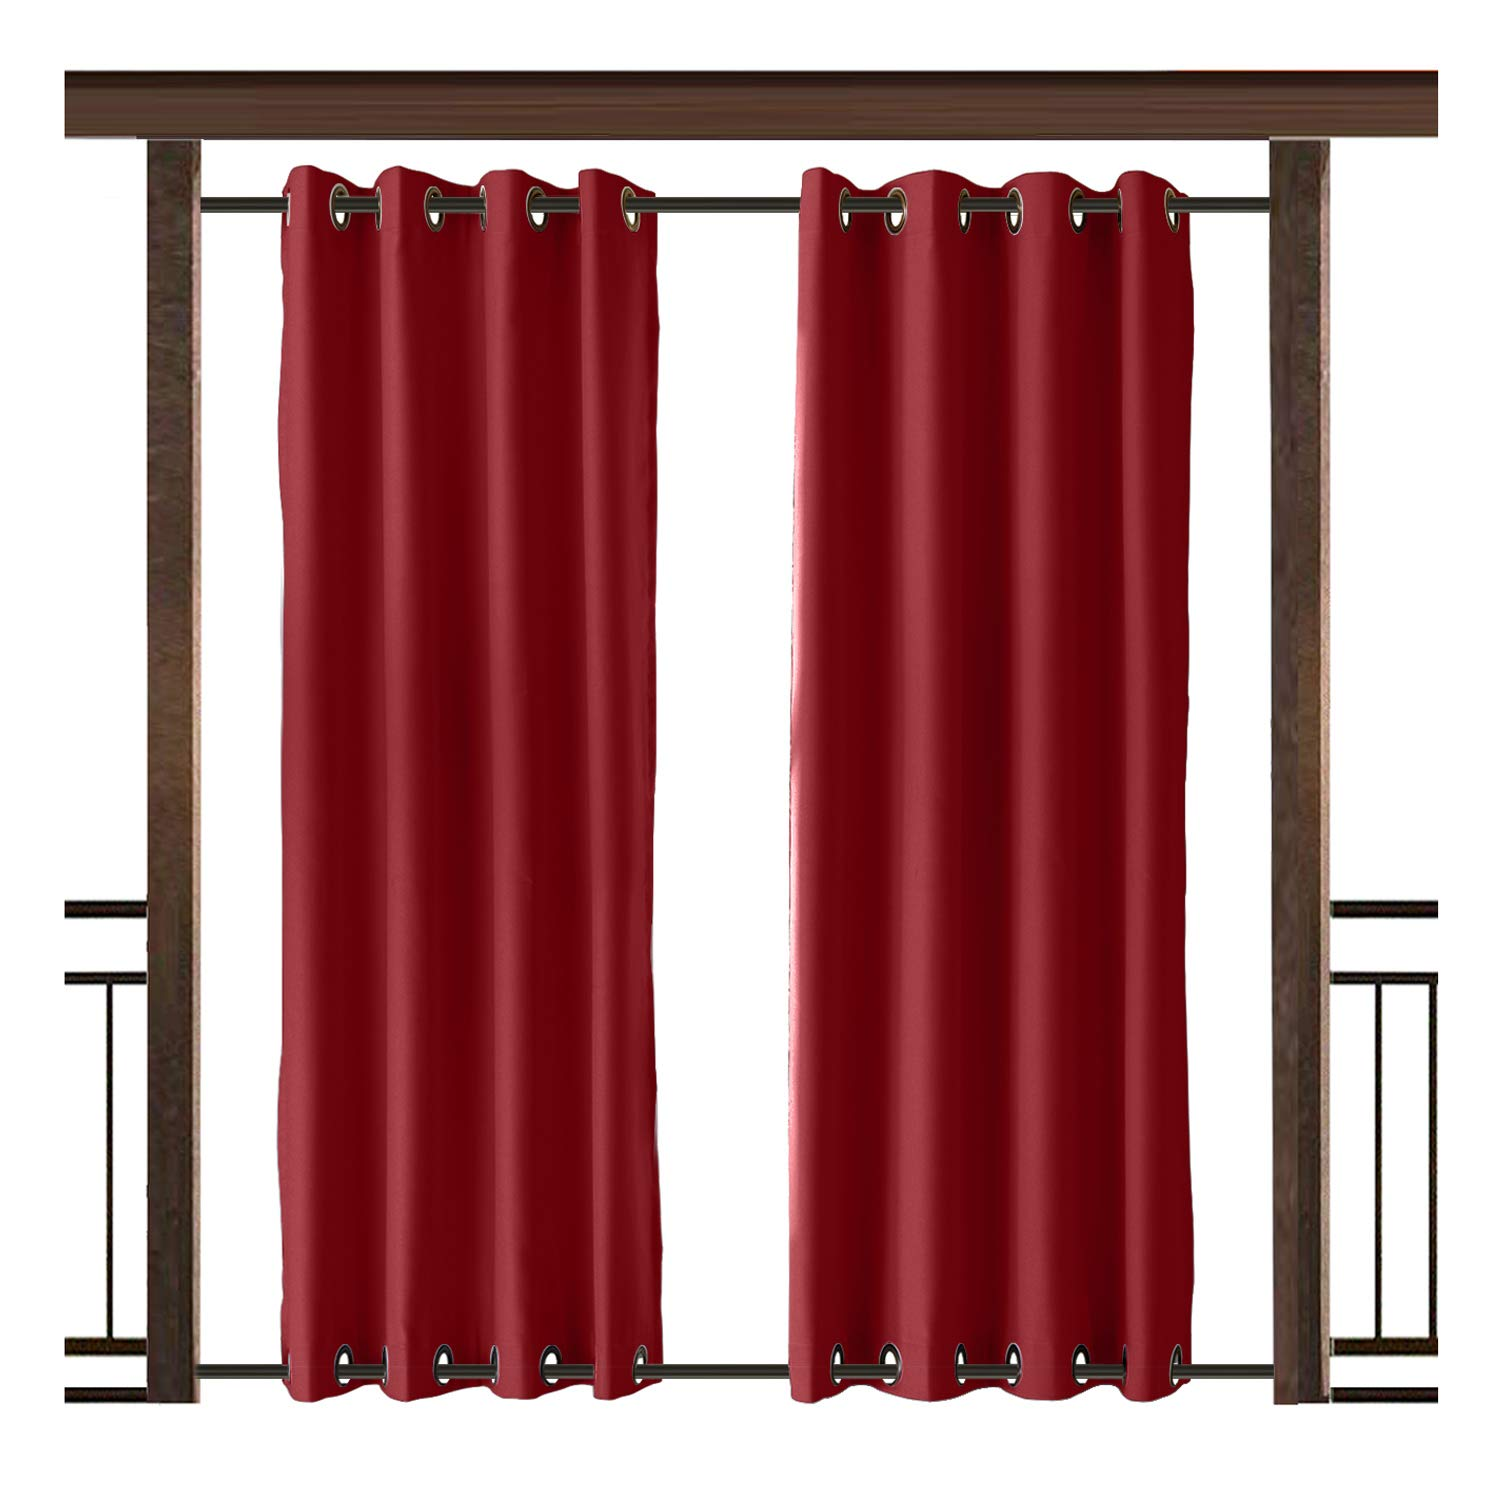 TWOPAGES Outdoor Curtain Rustproof Grommet Waterproof Drape(Both Top and Bottom) Red 120'' W x 84'' L for Front Porch, Pergola, Cabana, Covered Patio, Gazebo, Dock, and Beach Home (1 Panel).